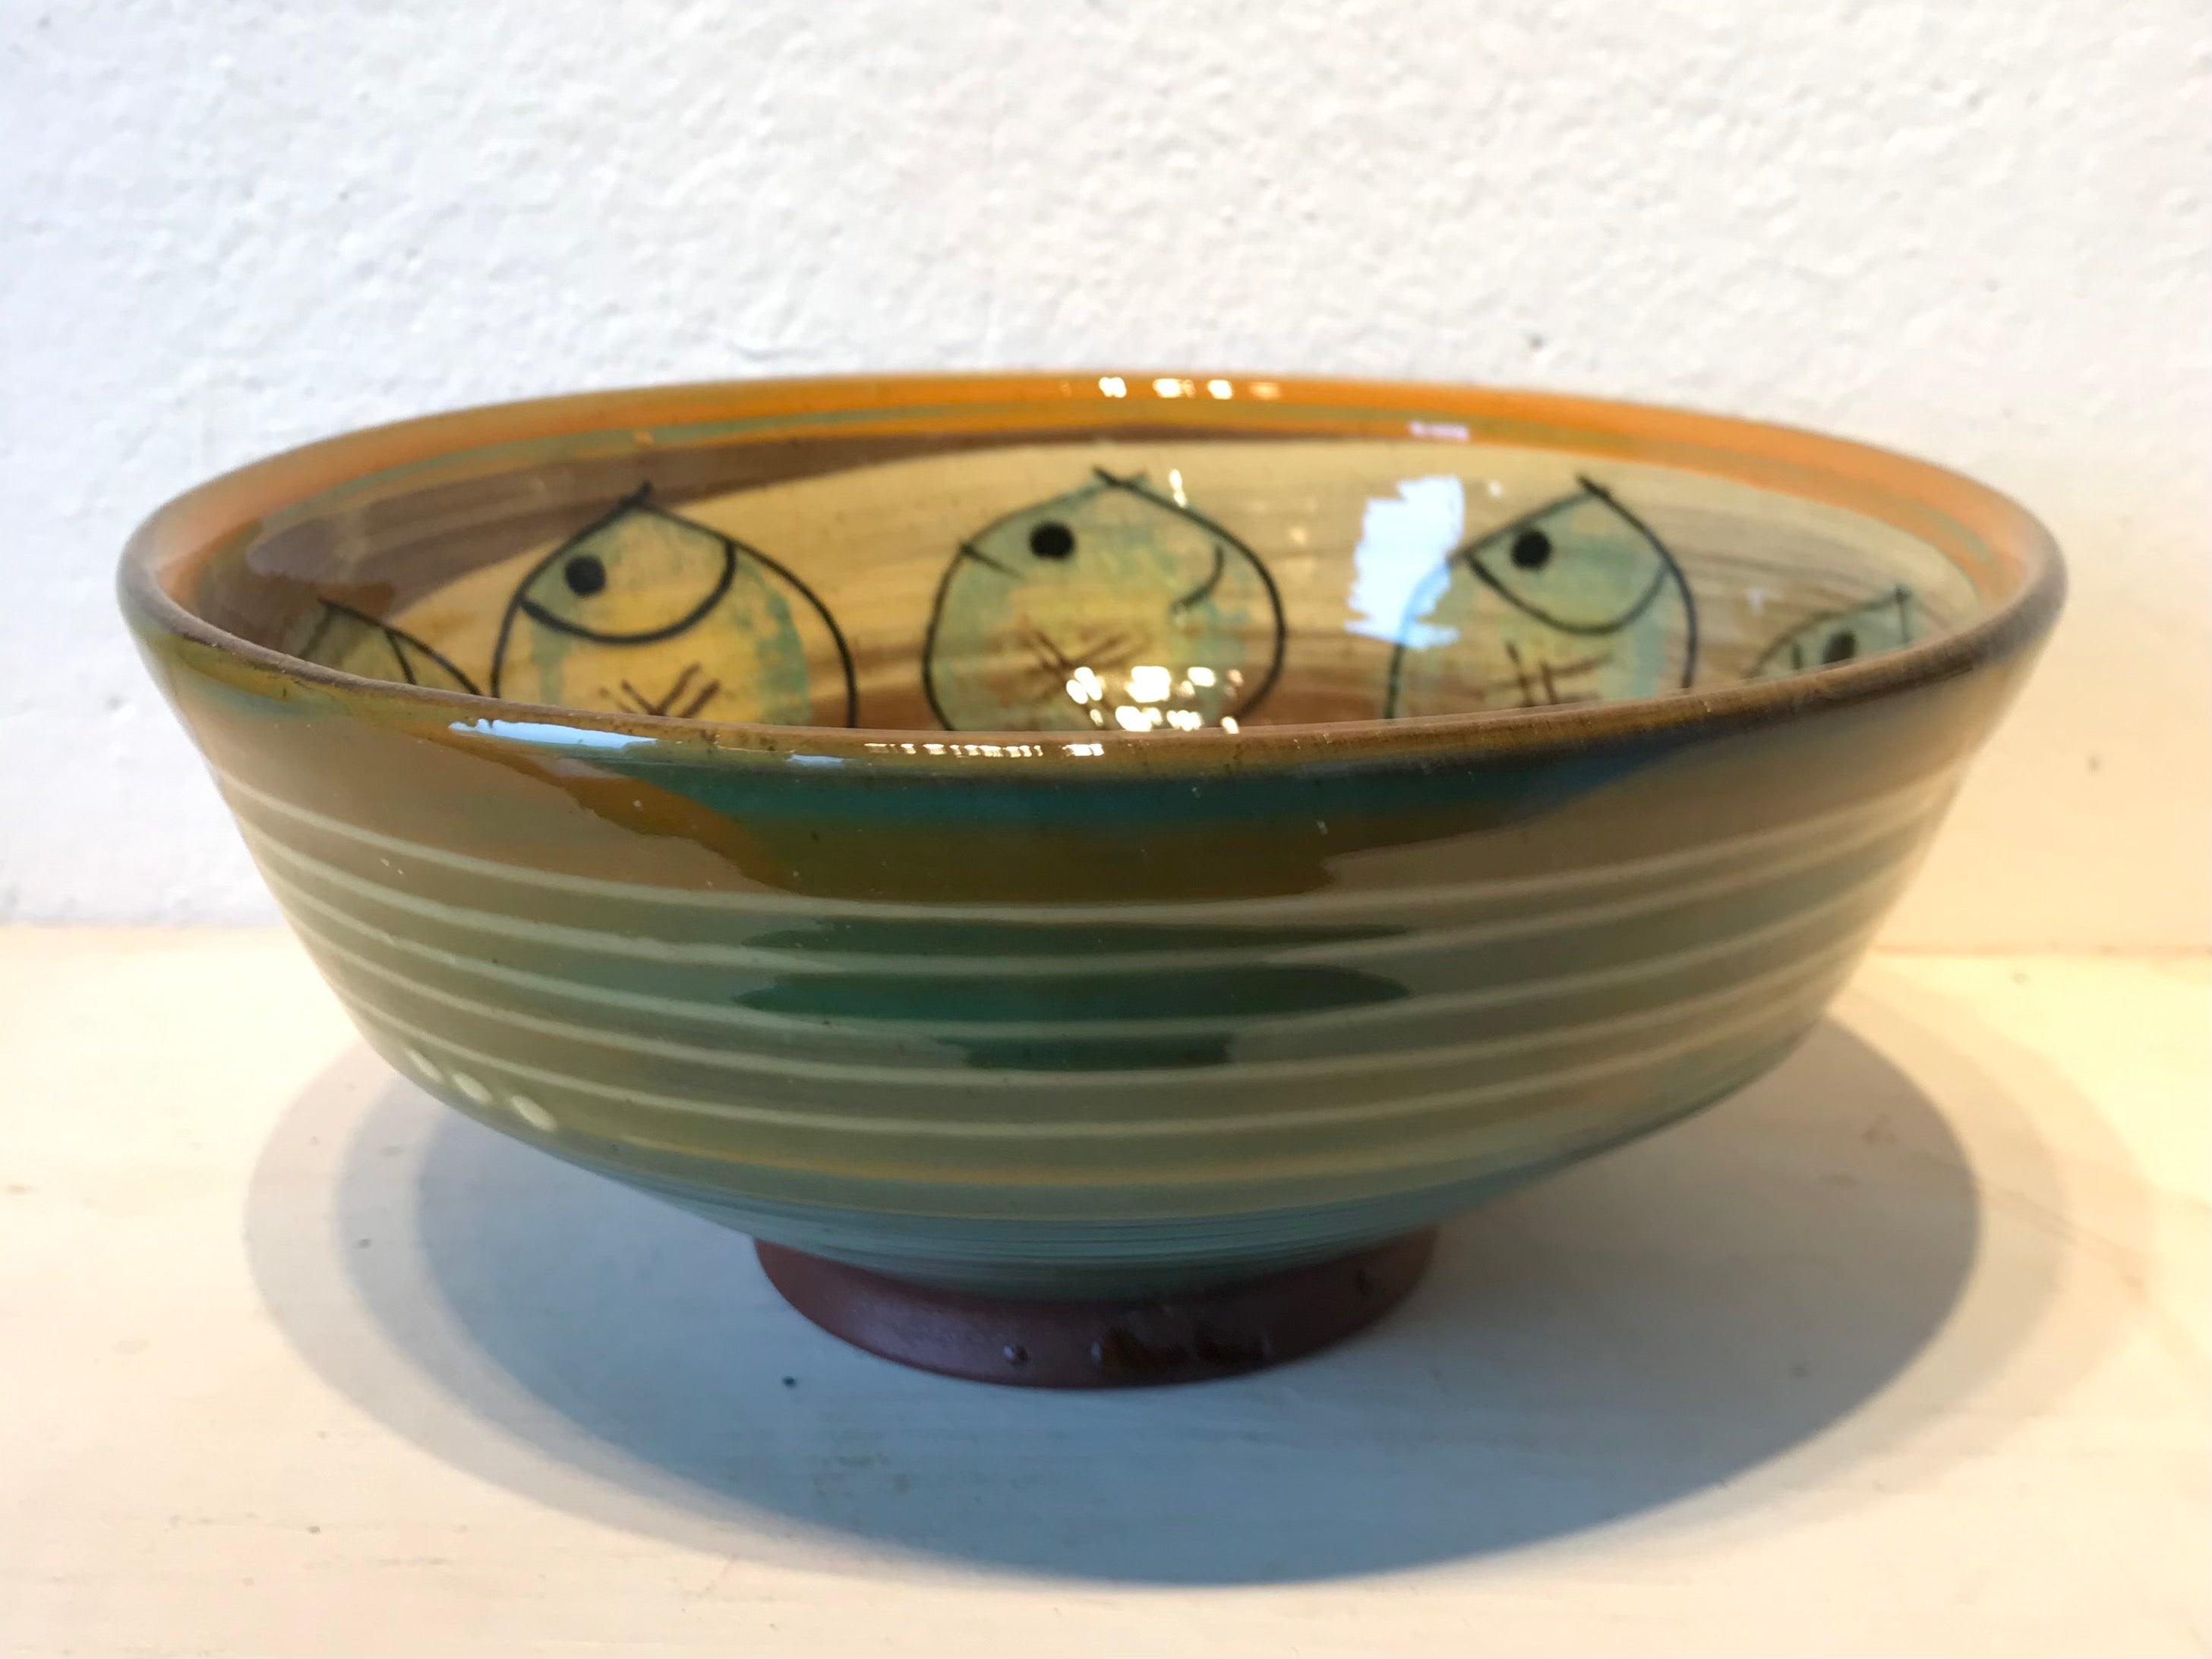 Orange and Cream Bowl with Fat Fish